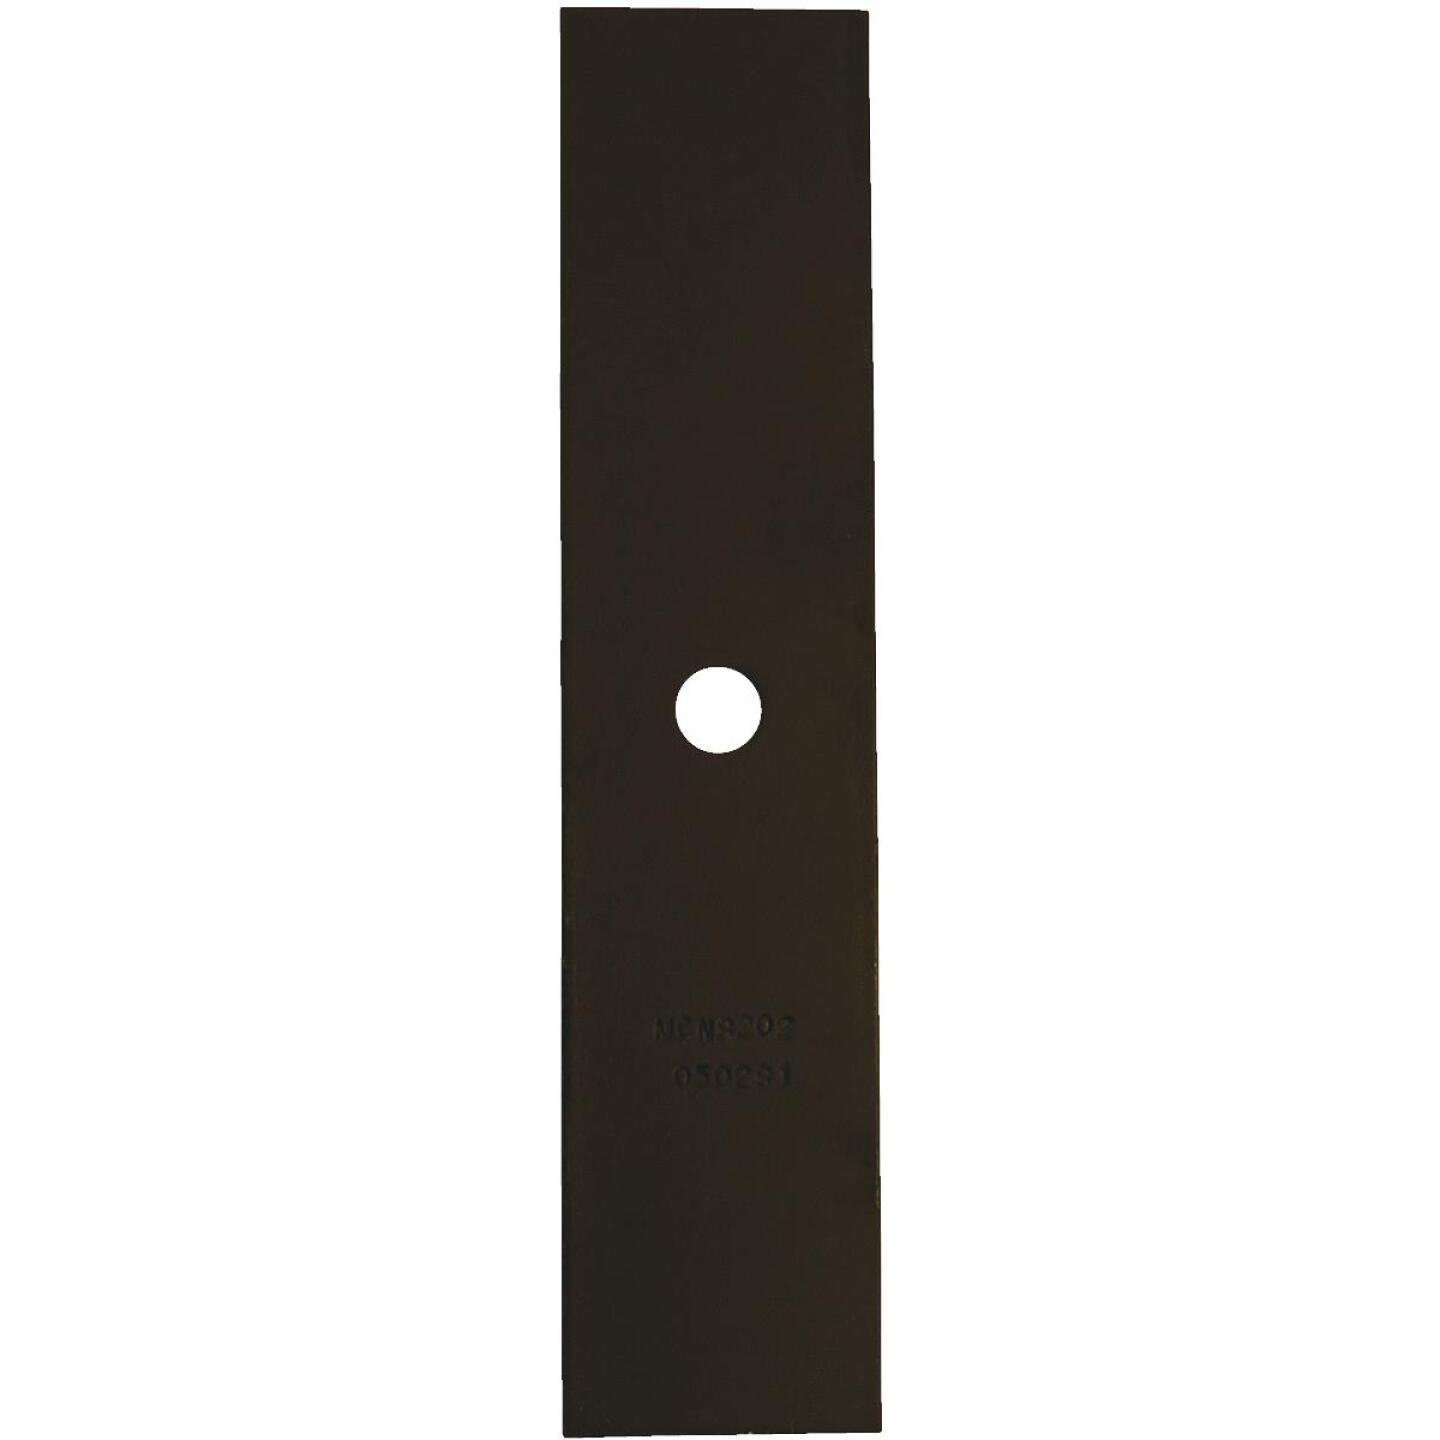 Arnold McClane Carbon Steel Replacement Edger Blade Image 1